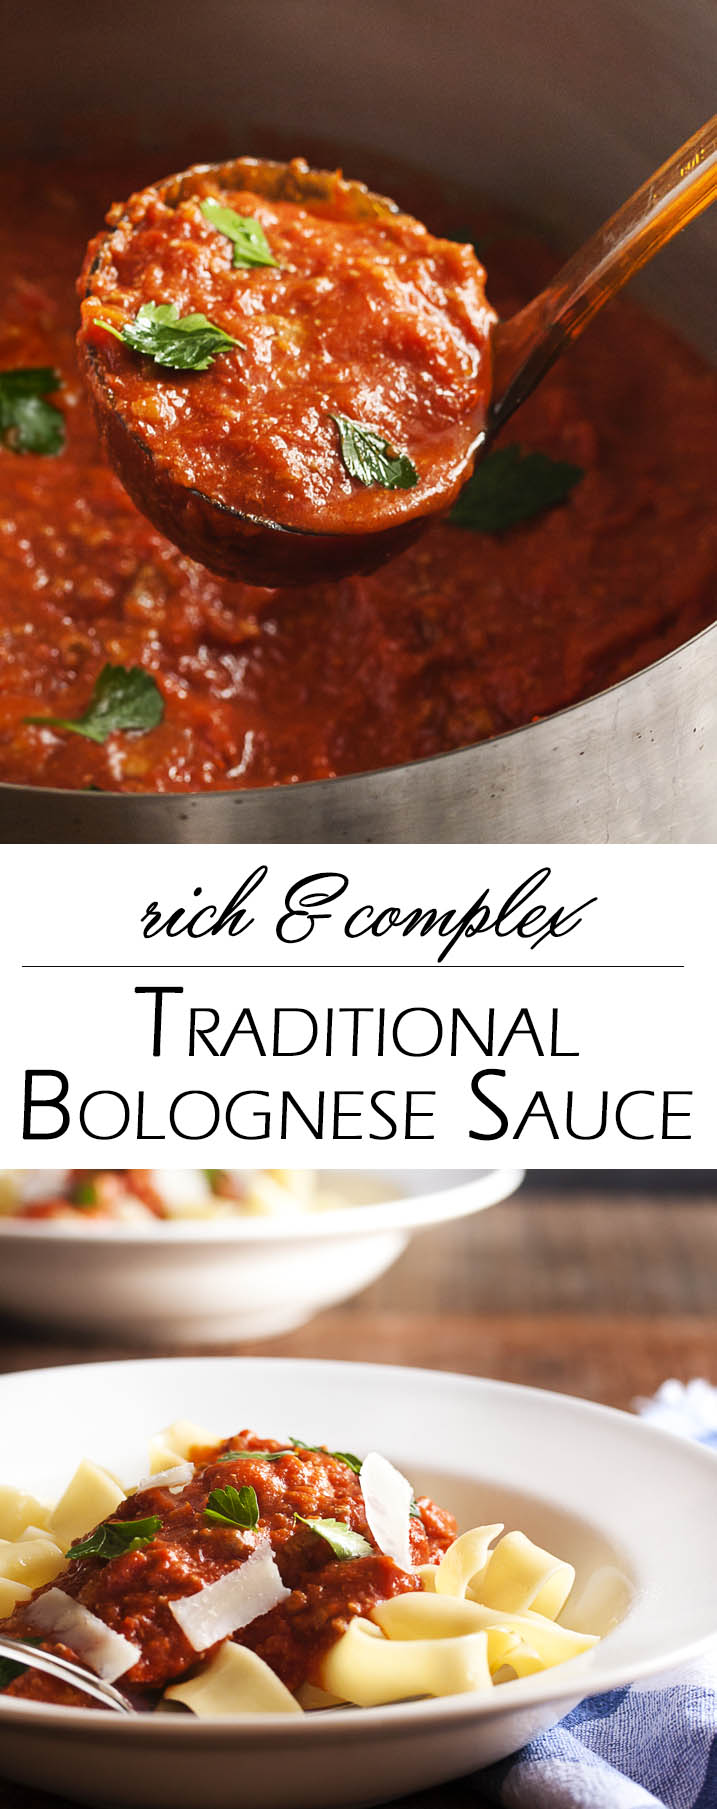 Rich & Complex Traditional Bolognese Sauce - A long, slow simmer builds layers of flavor and makes this Bolognese sauce so rich and complex! Meaty, silky, and hearty. This is a sauce worth having on your stove all day long. Make some for today and freeze some for tomorrow. | justalittlebitofbacon.com